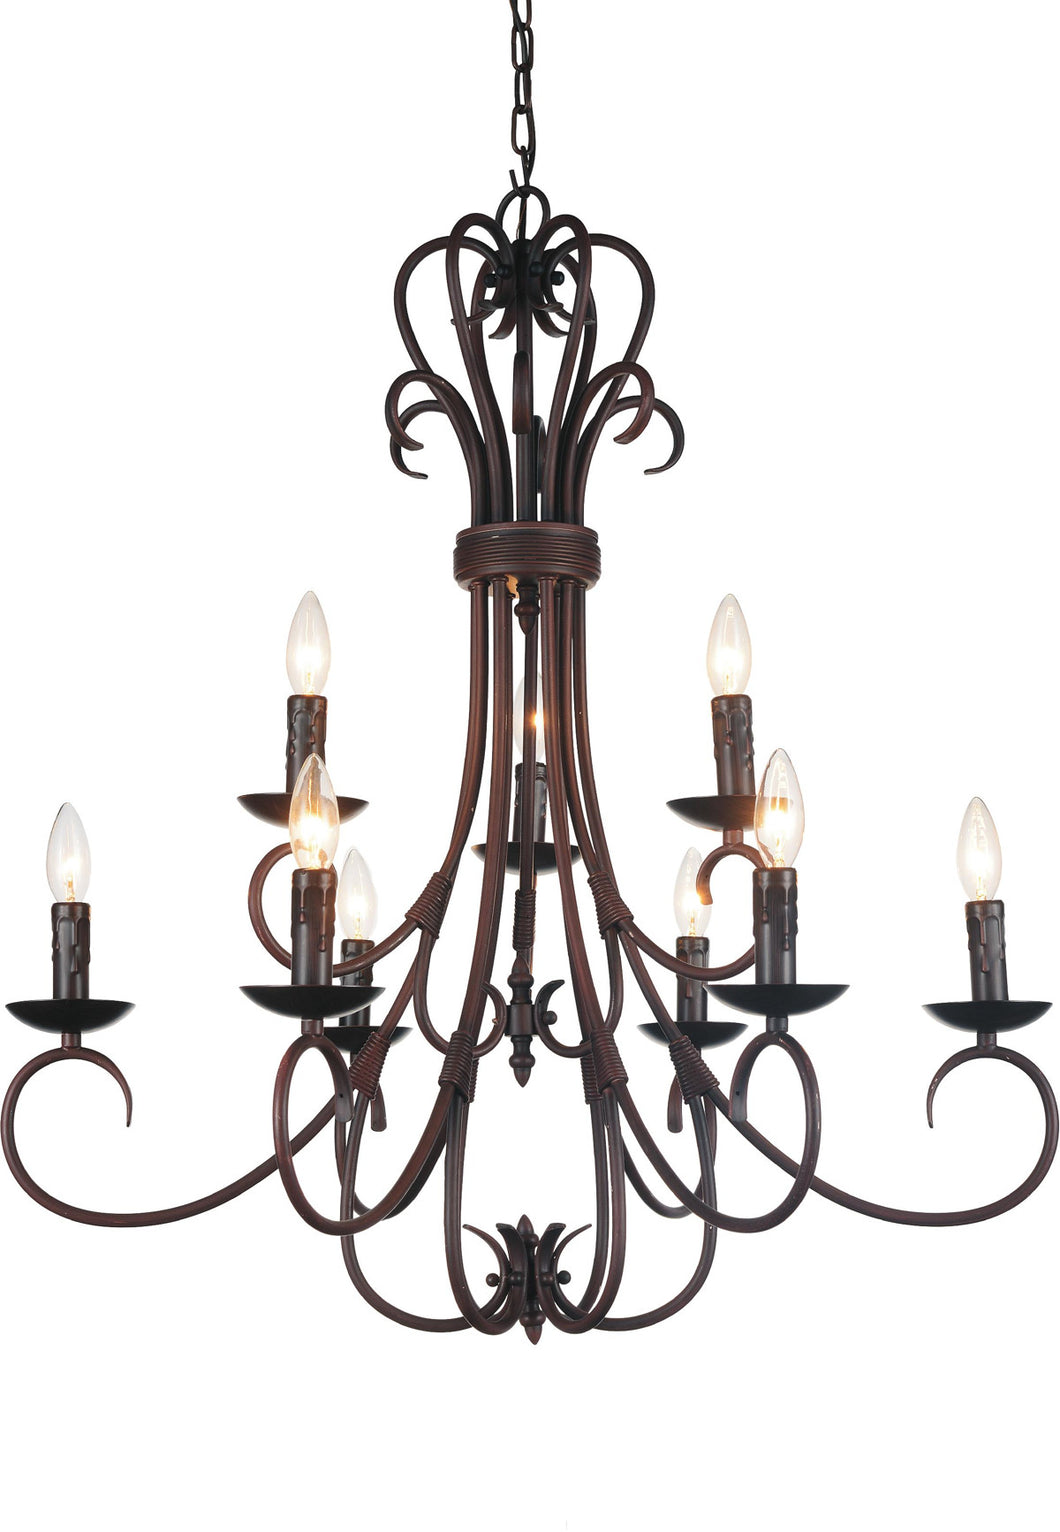 9 Light Up Chandelier with Oil Rubbed Brown finish